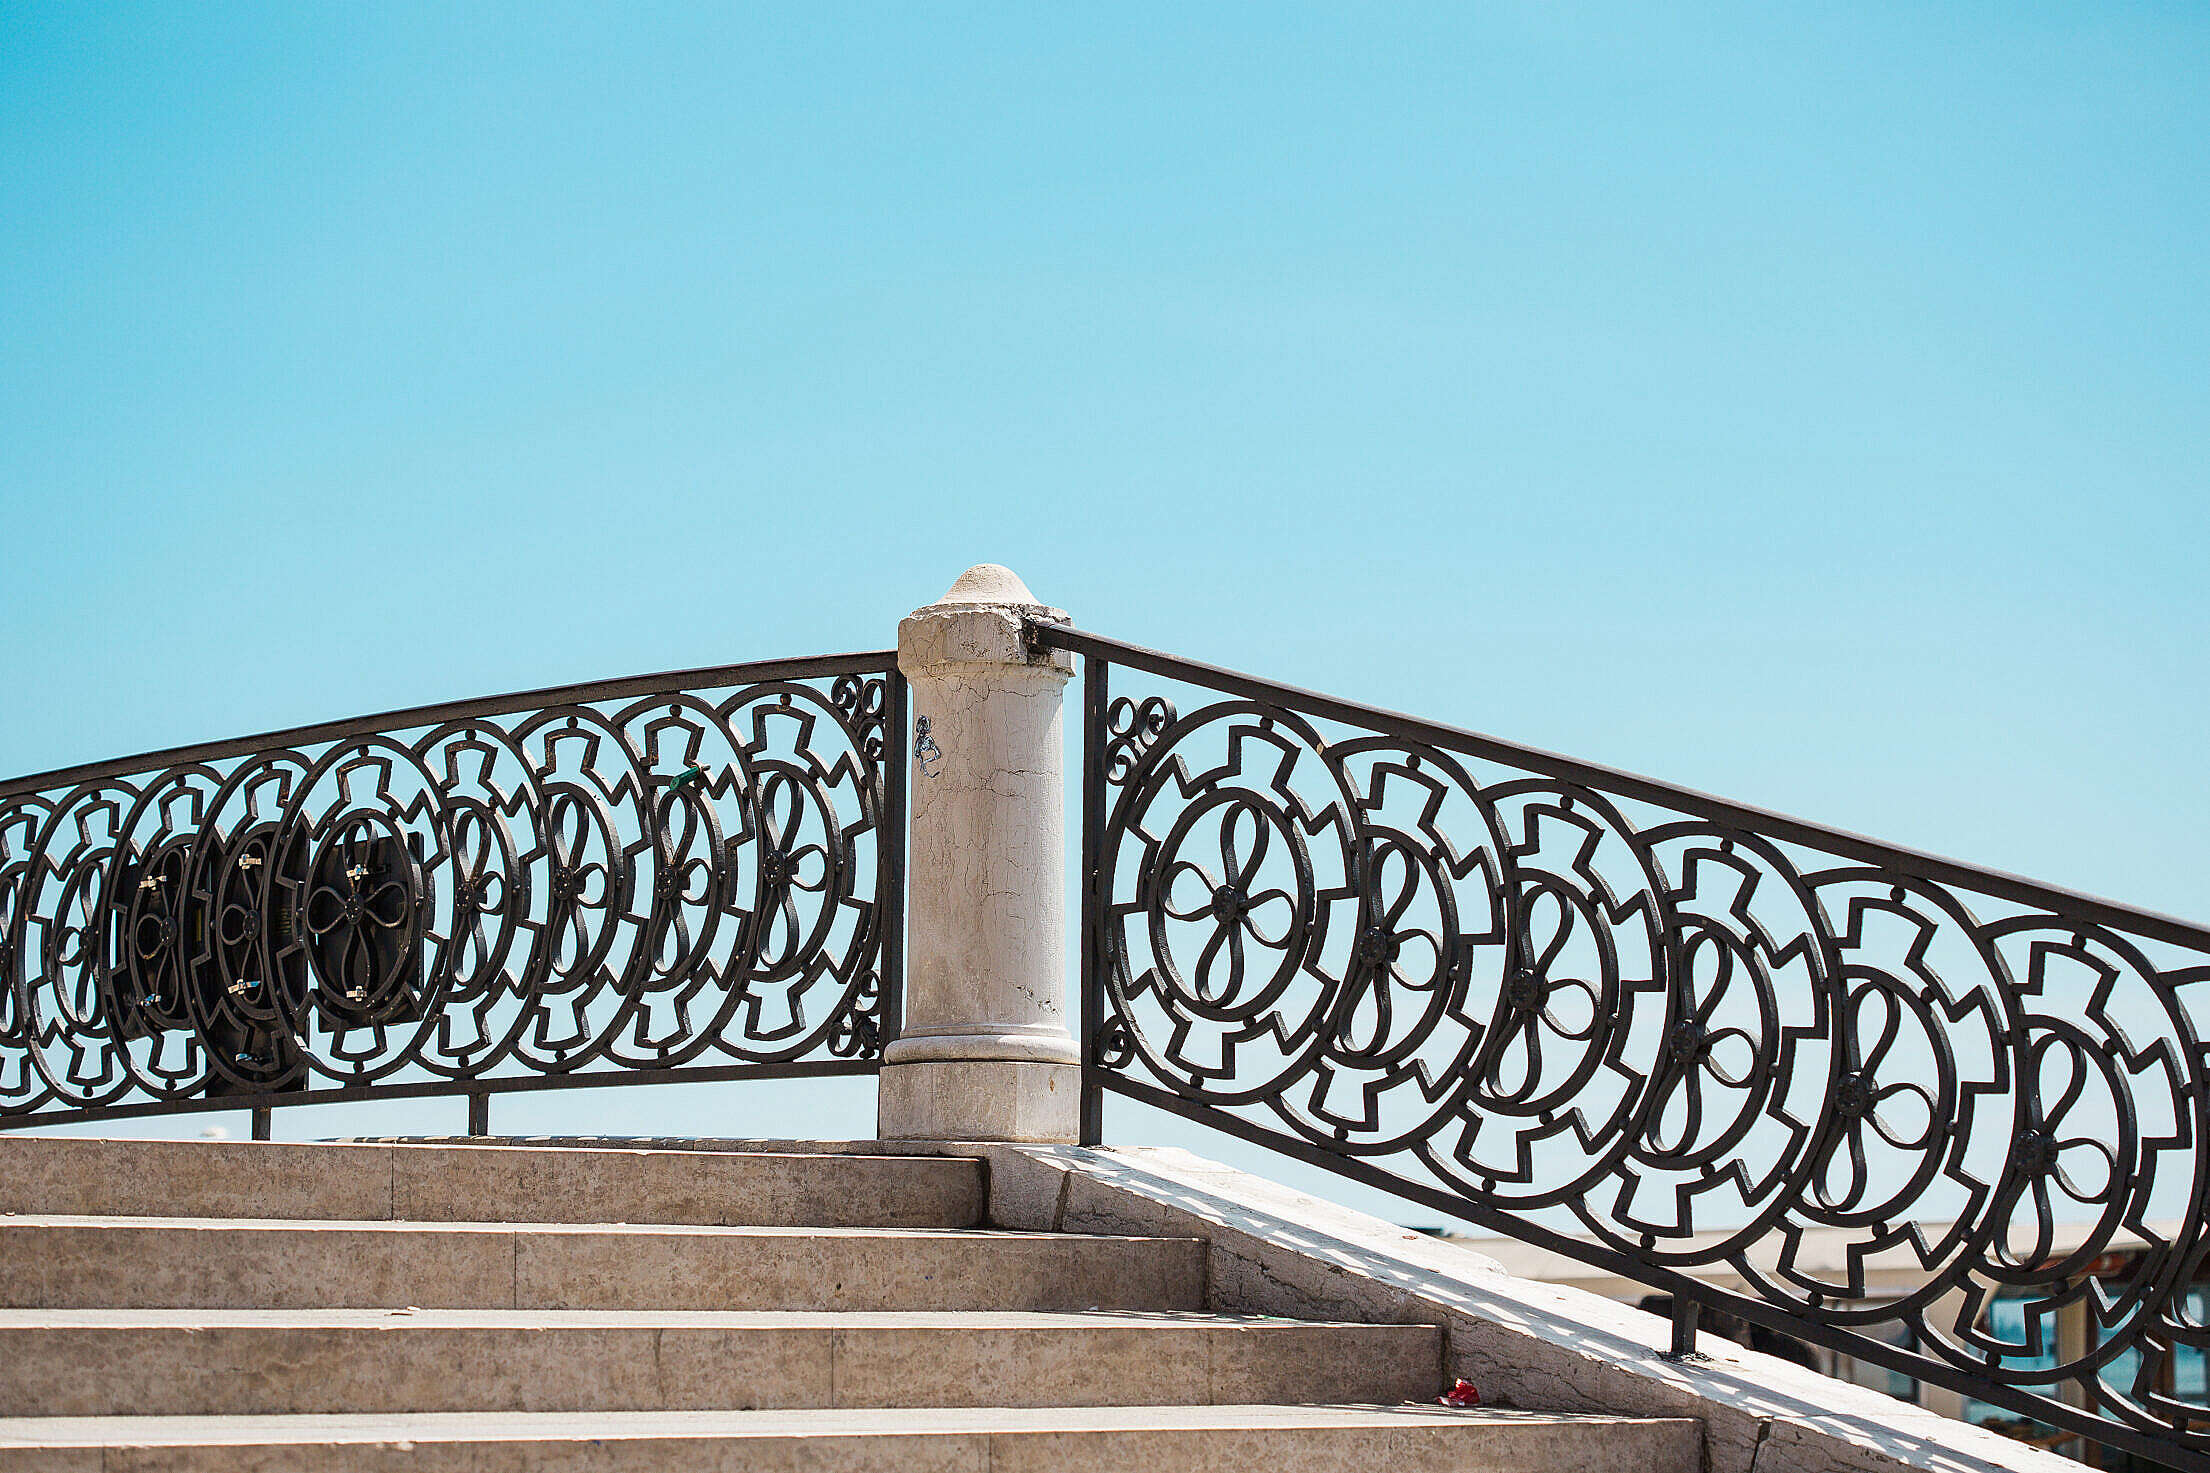 Stairs and Old Vintage Handrails in Venice, Italy Free Stock Photo